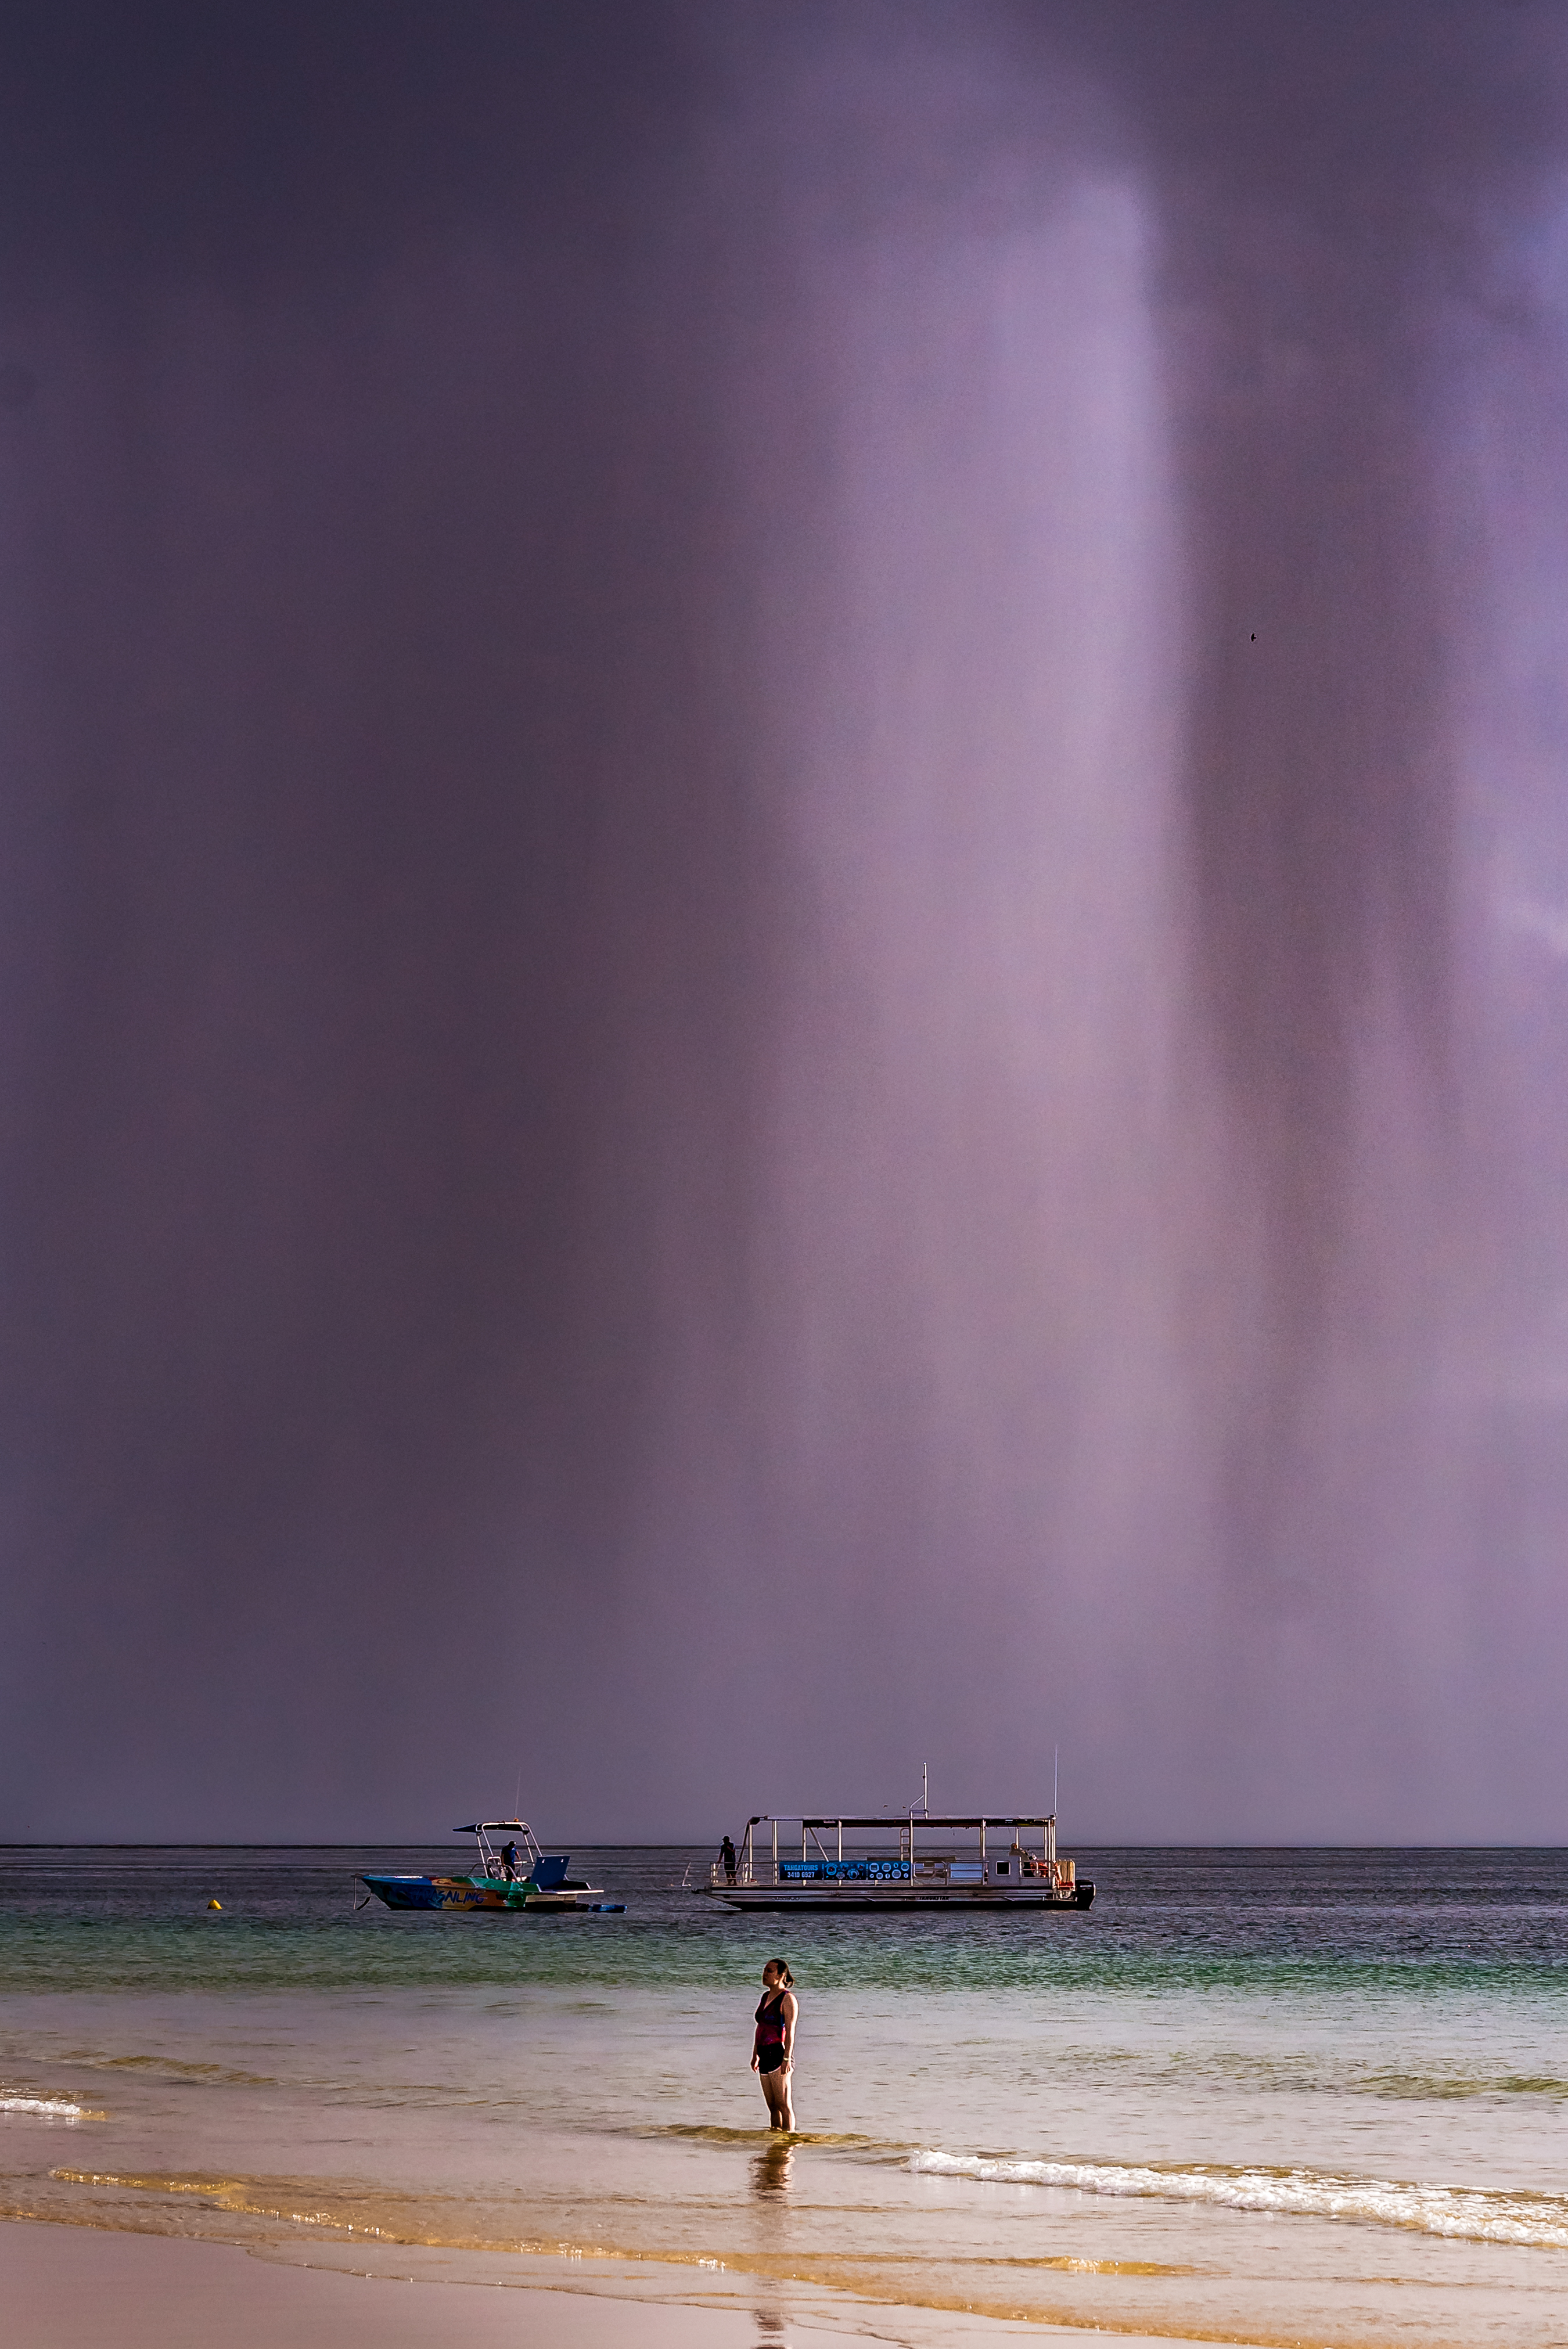 Afternoon Shower on the Beach by Joep Buijs